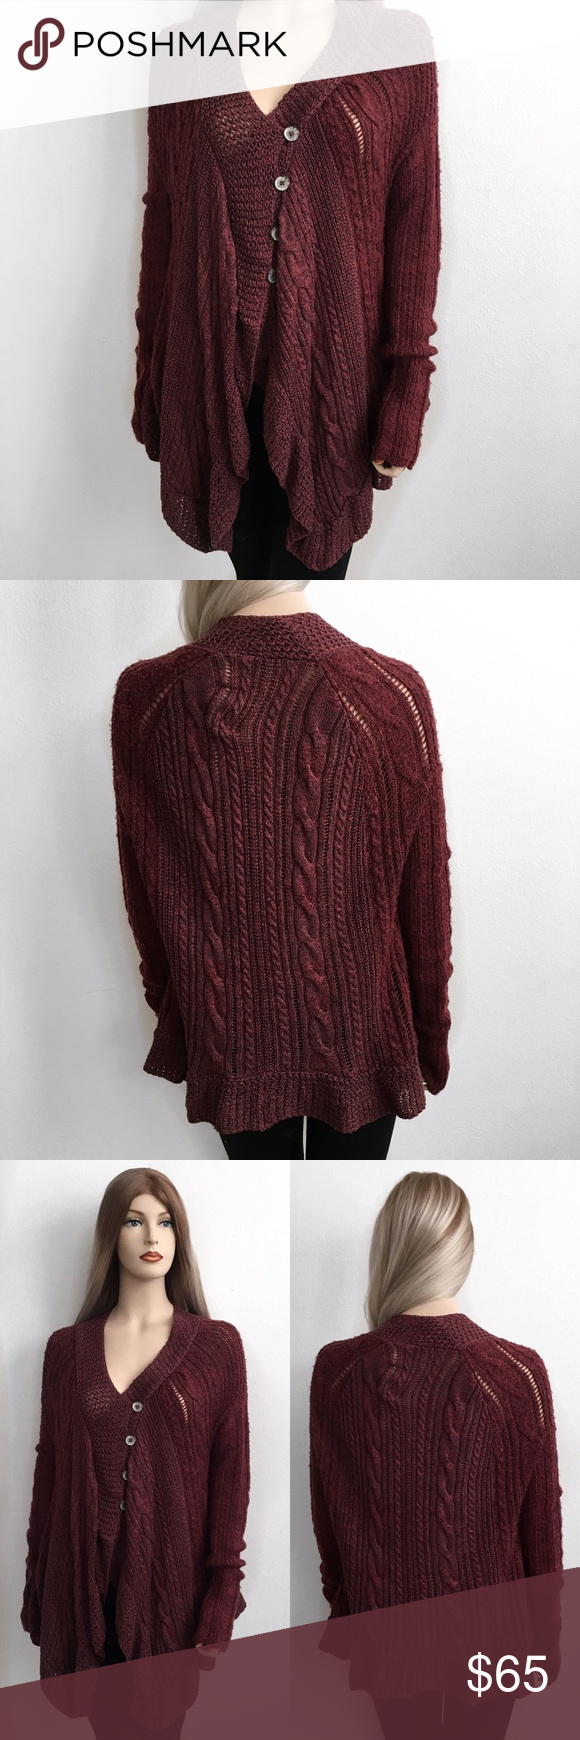 Free People Knitted Cardigan🍂❤️ Free People Knitted Cardigan🍂❤️ Size: S Condition: Used  The perfect fall/winter cardigan.Worn once for last years thanksgiving, color is a burgundy/auburn, has no stains and no tears. All buttons are in tact. It's very soft and unique this can also fit a size medium. Pair it with leggings and boots🍃🍂 I purchased this from Nordstorm for $165+ tax.   In Bin: BA **All items from my closet come from a SMOKE FREE home**🙅🏽😊 Free People Jackets & Coats